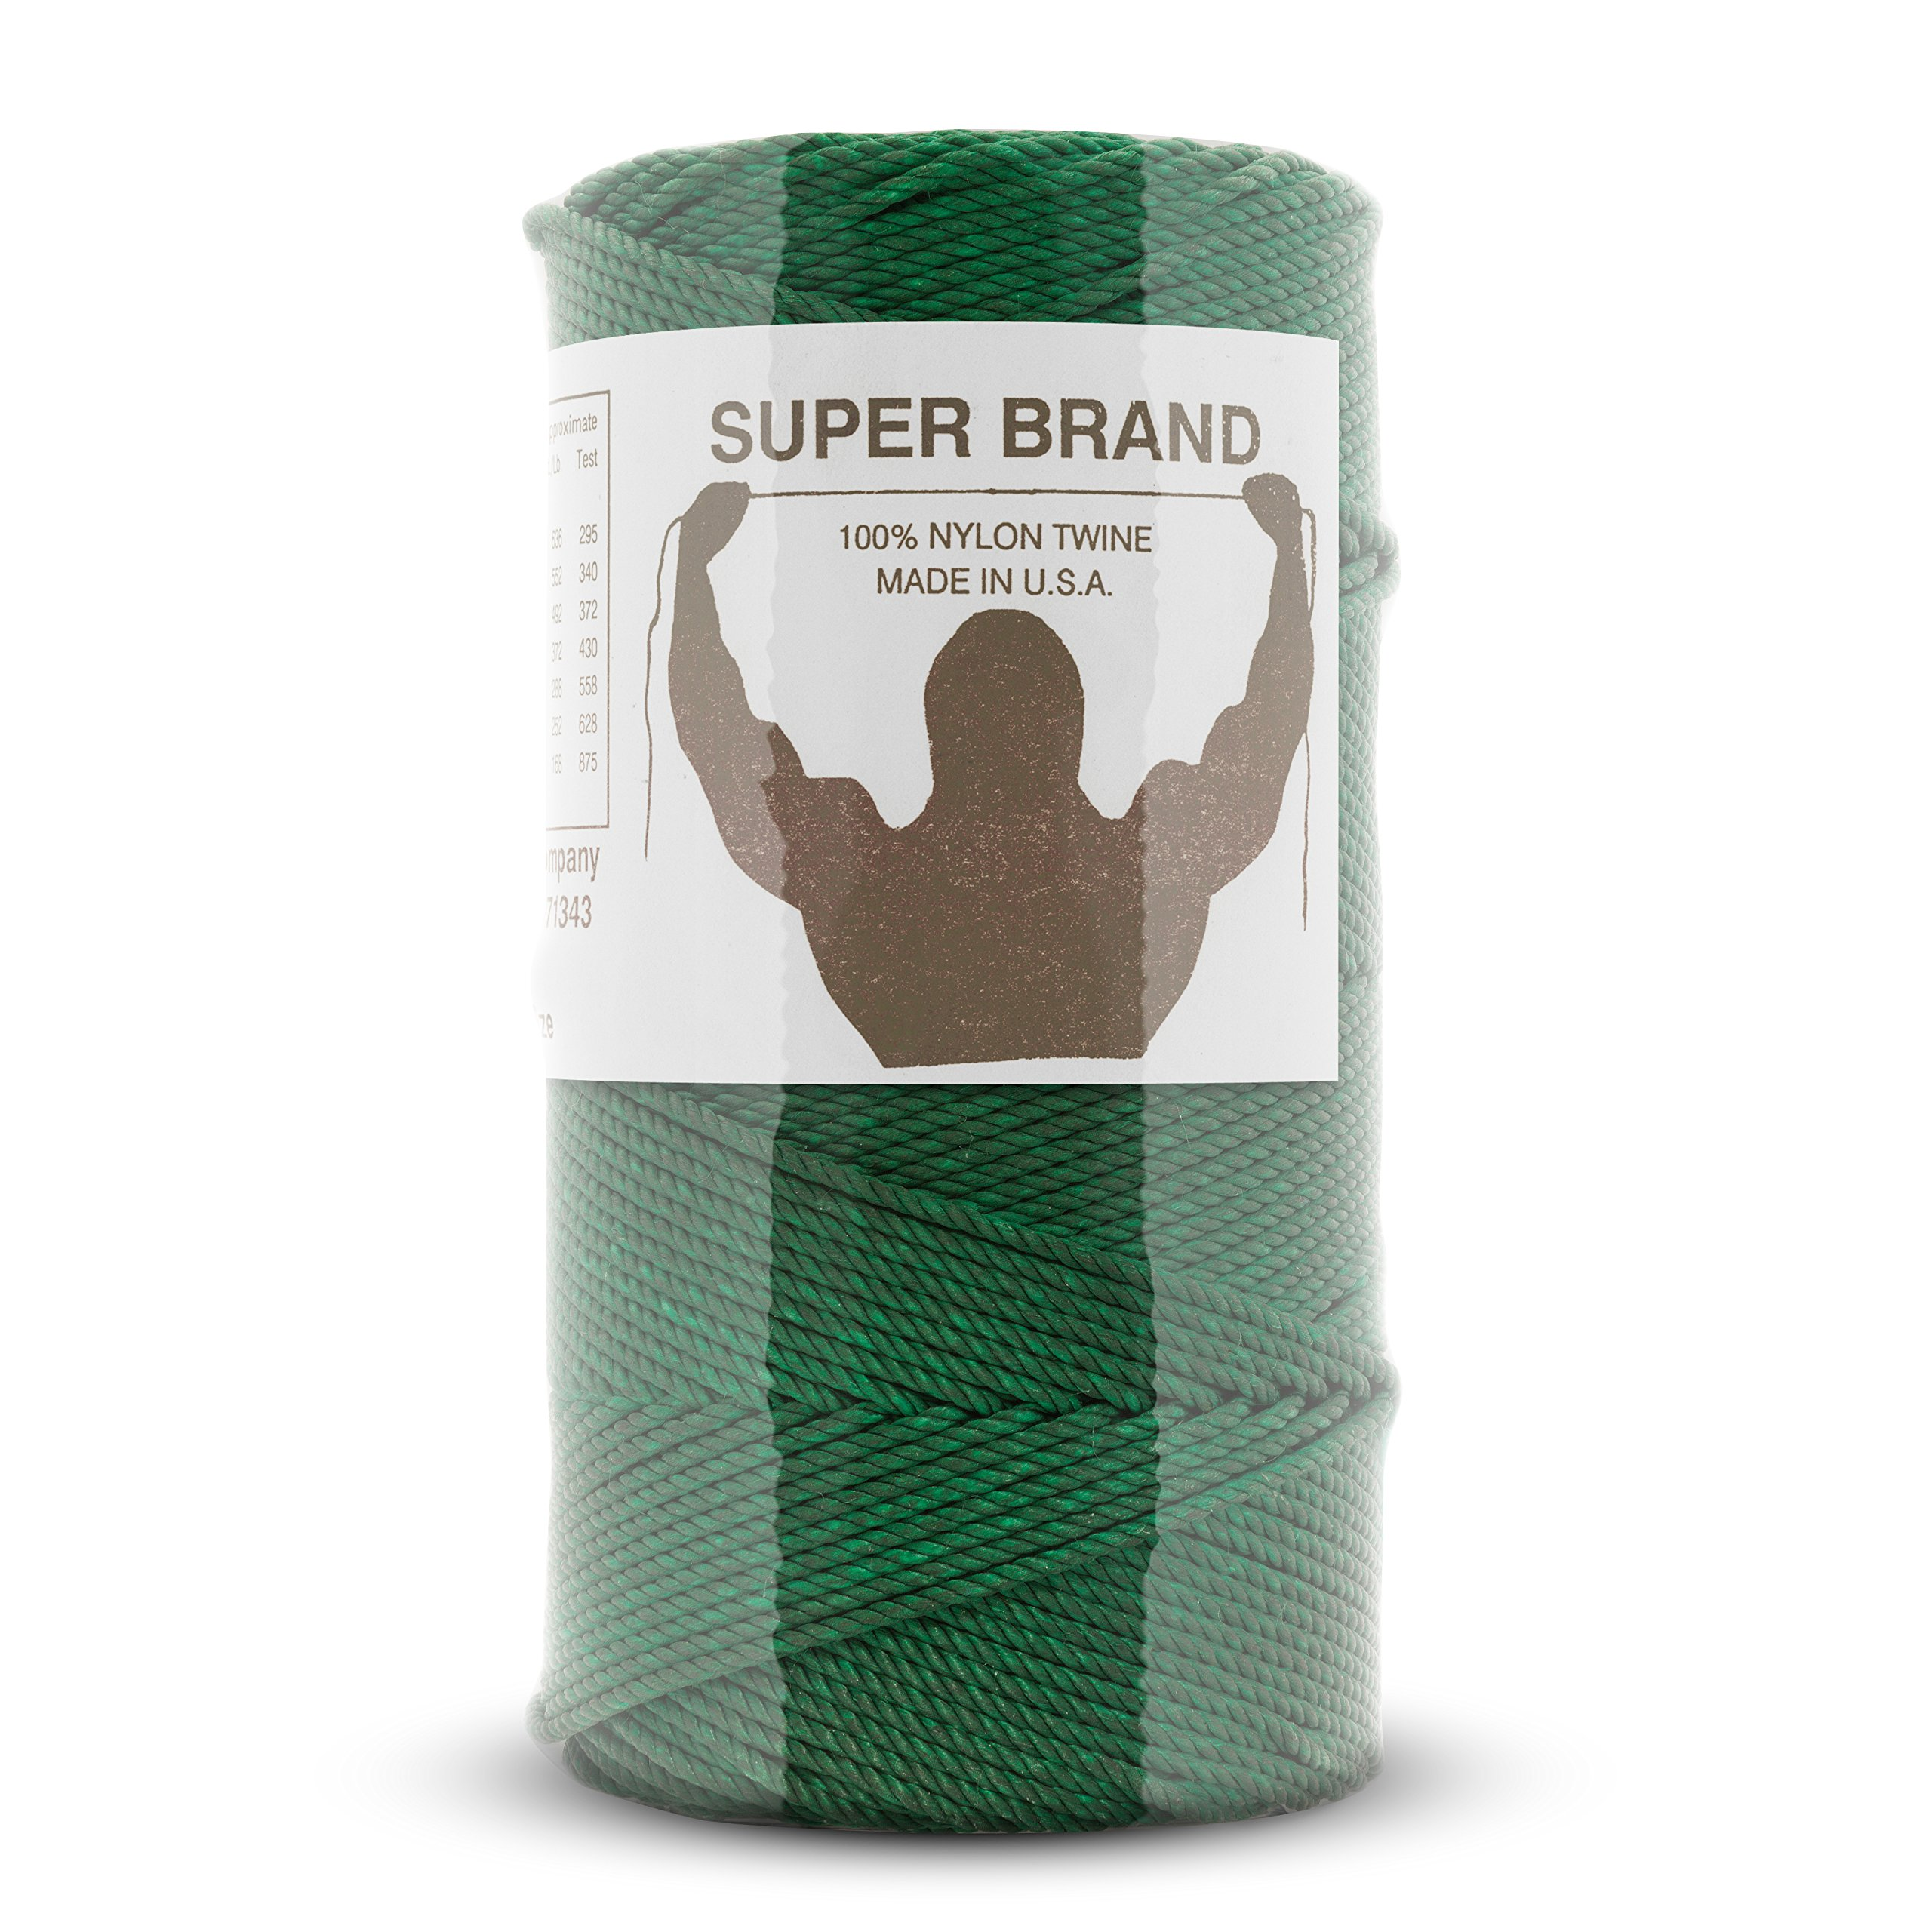 Bonded Green Nylon Twine, Twisted. Size #18, 1 lb 1-pack